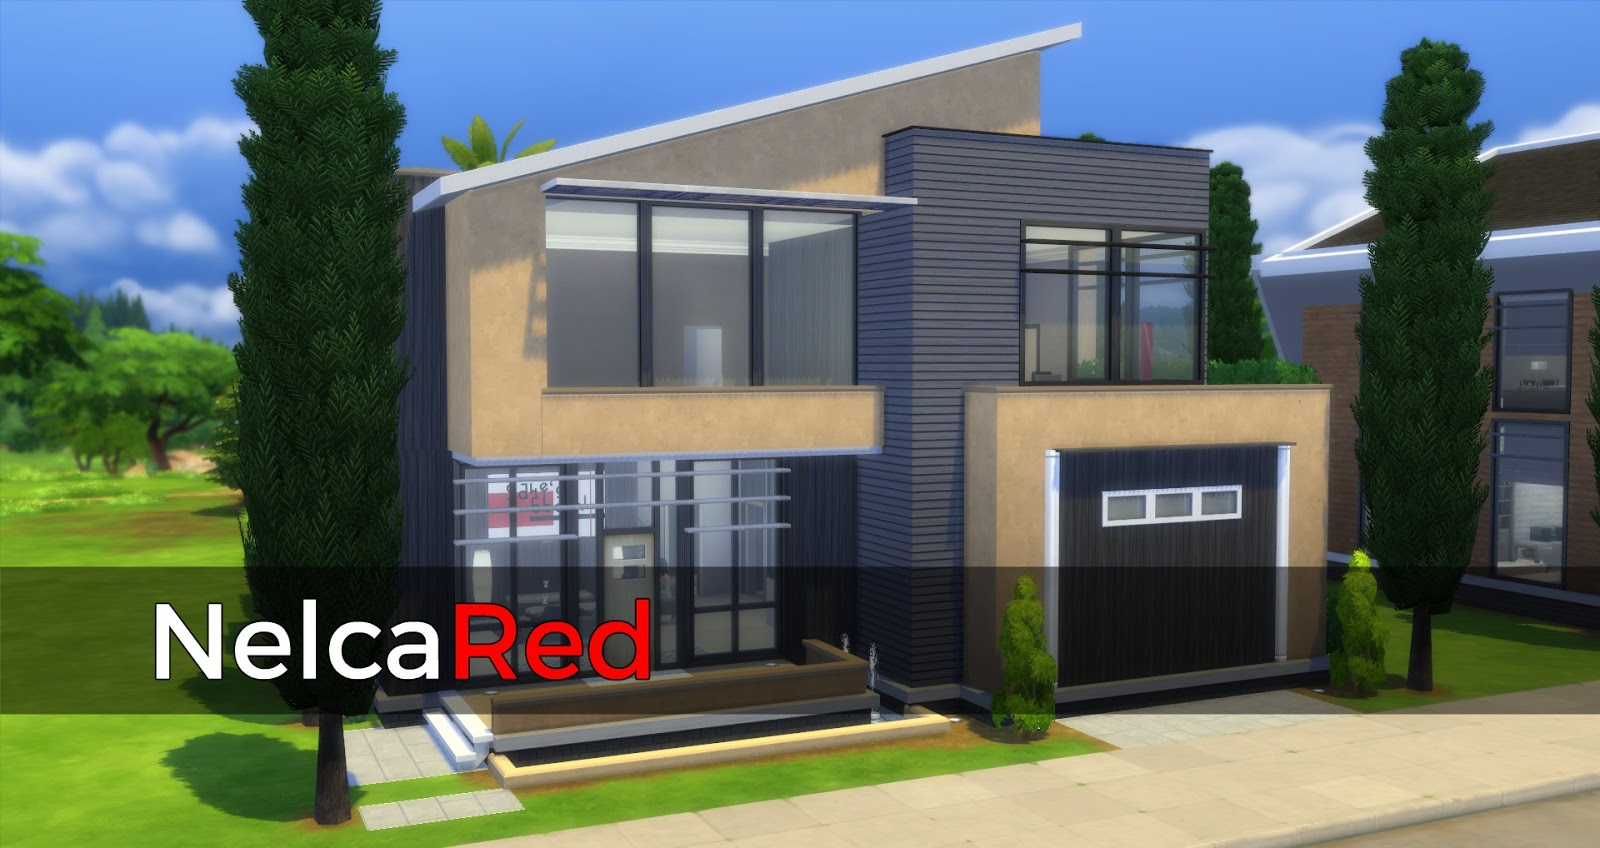 My sims 4 blog houses no cc by nelcared for Simple modern house sims 4